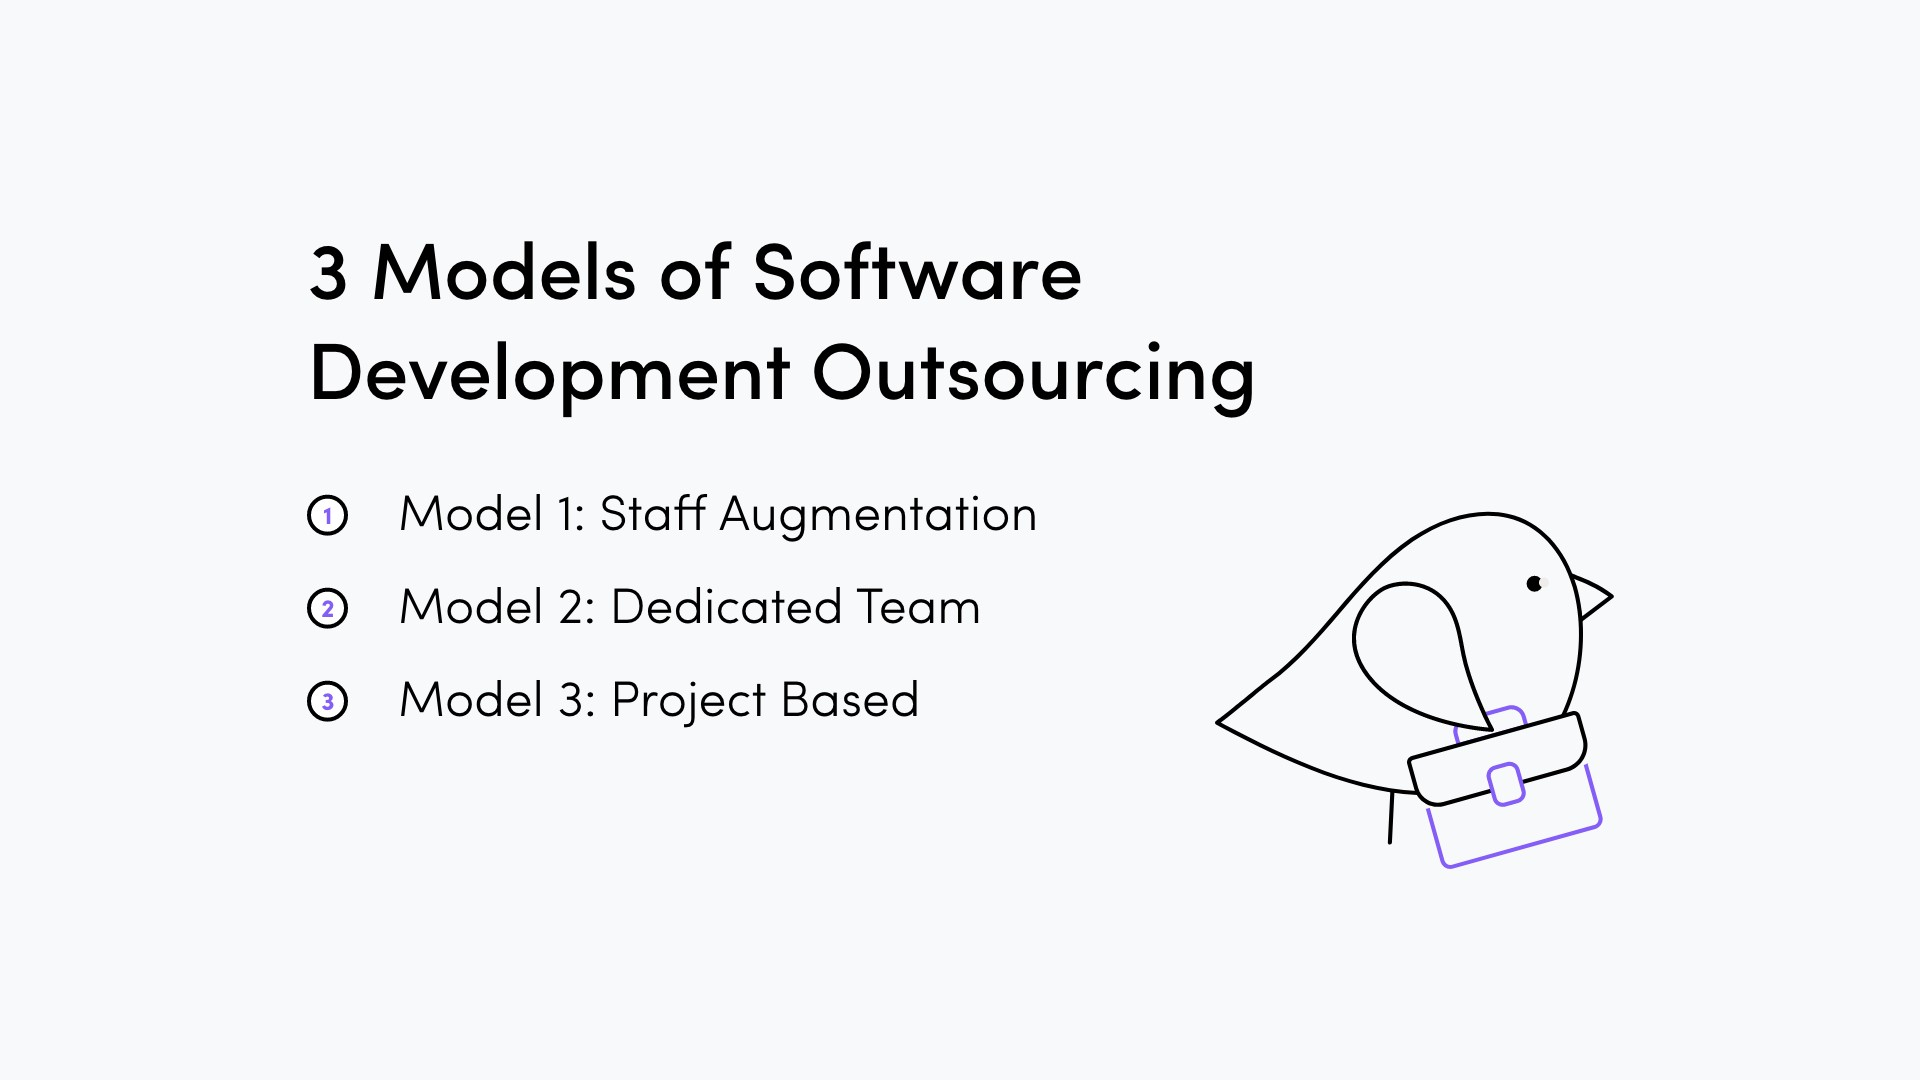 3 models of software development outsourcing: staff augmentation, dedicated team, project based